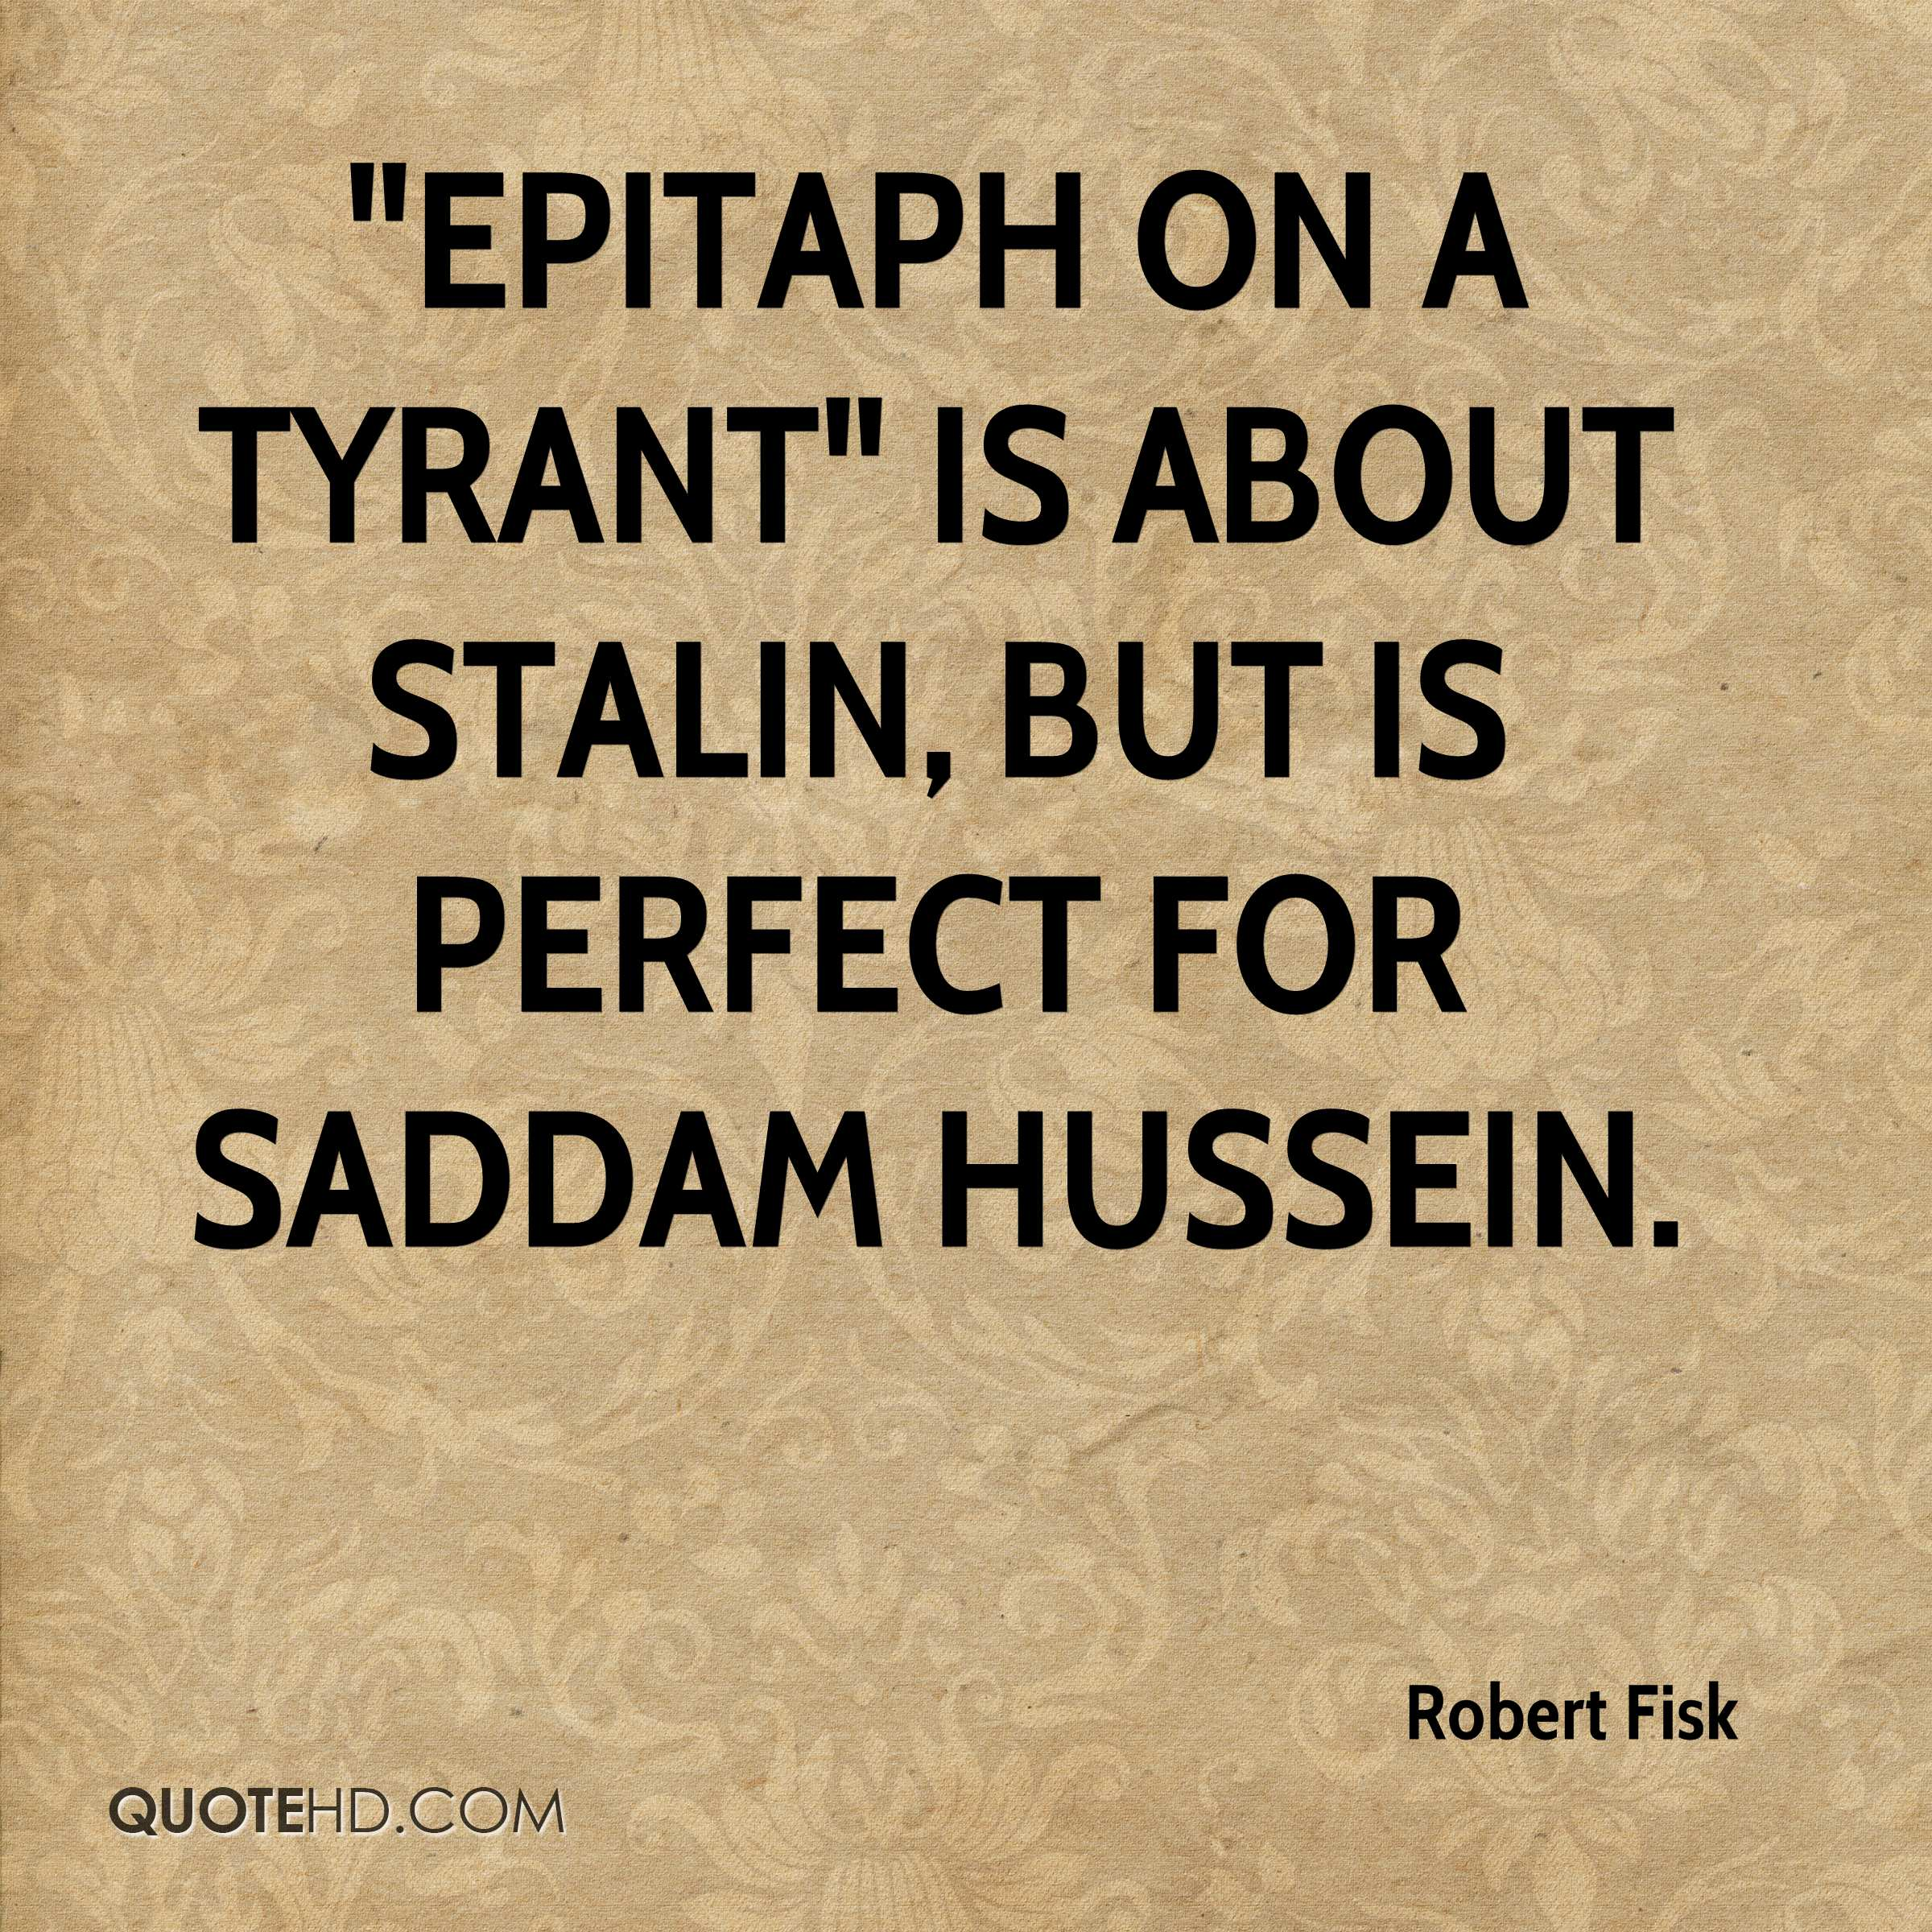 """Epitaph on a Tyrant"" is about Stalin, but is perfect for Saddam Hussein."